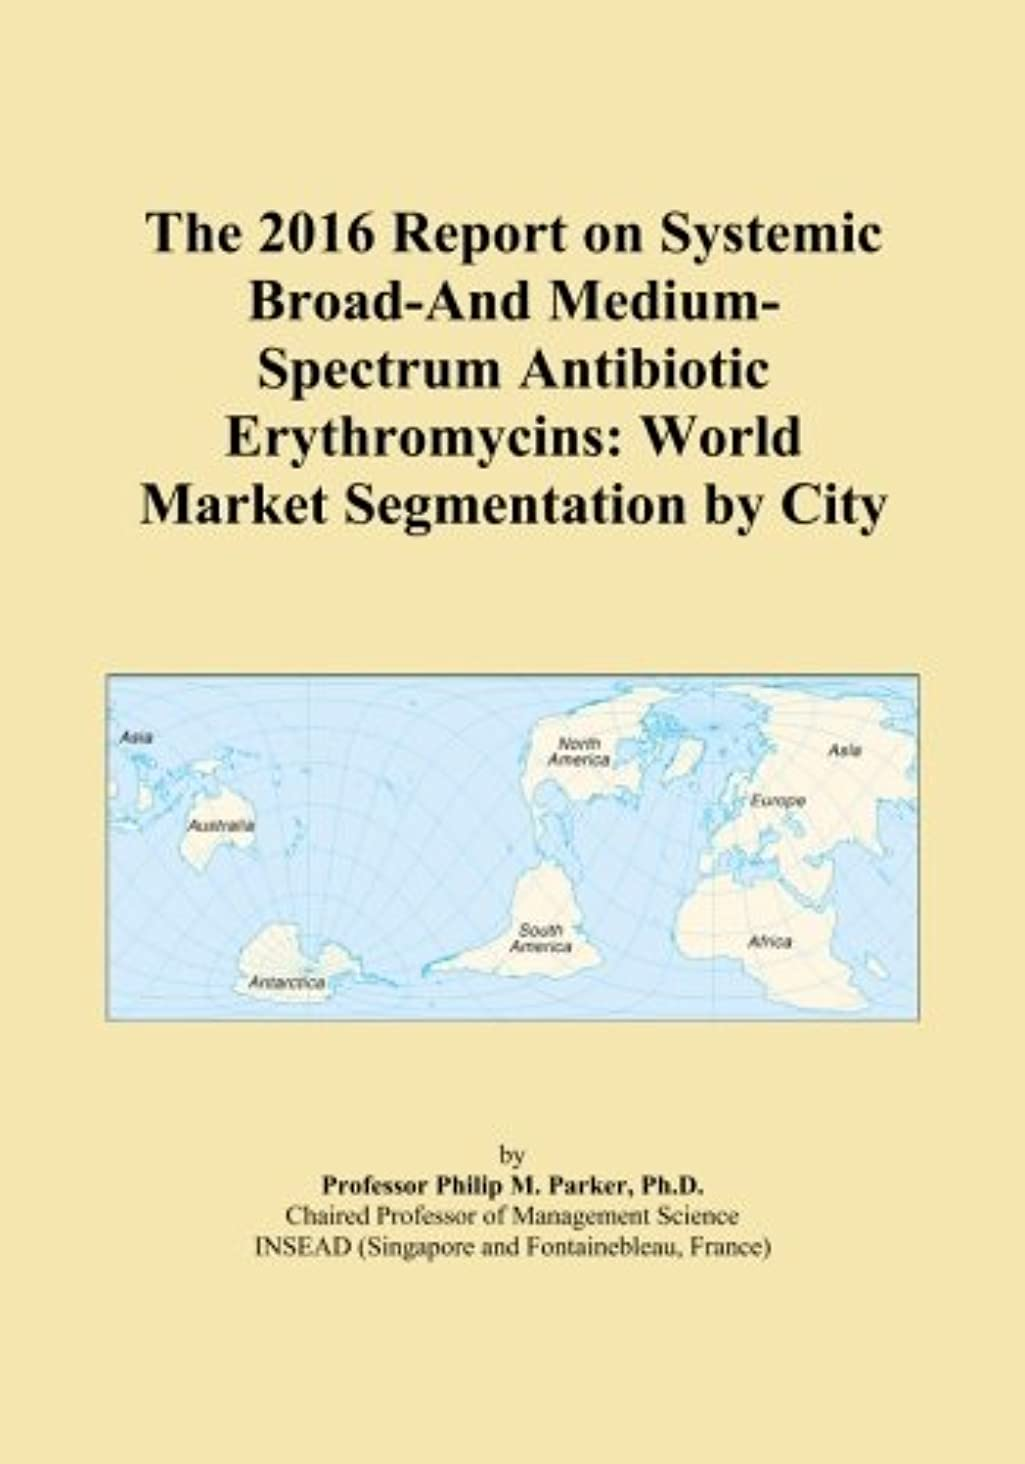 The 2016 Report on Systemic Broad-And Medium-Spectrum Antibiotic Erythromycins: World Market Segmentation by City